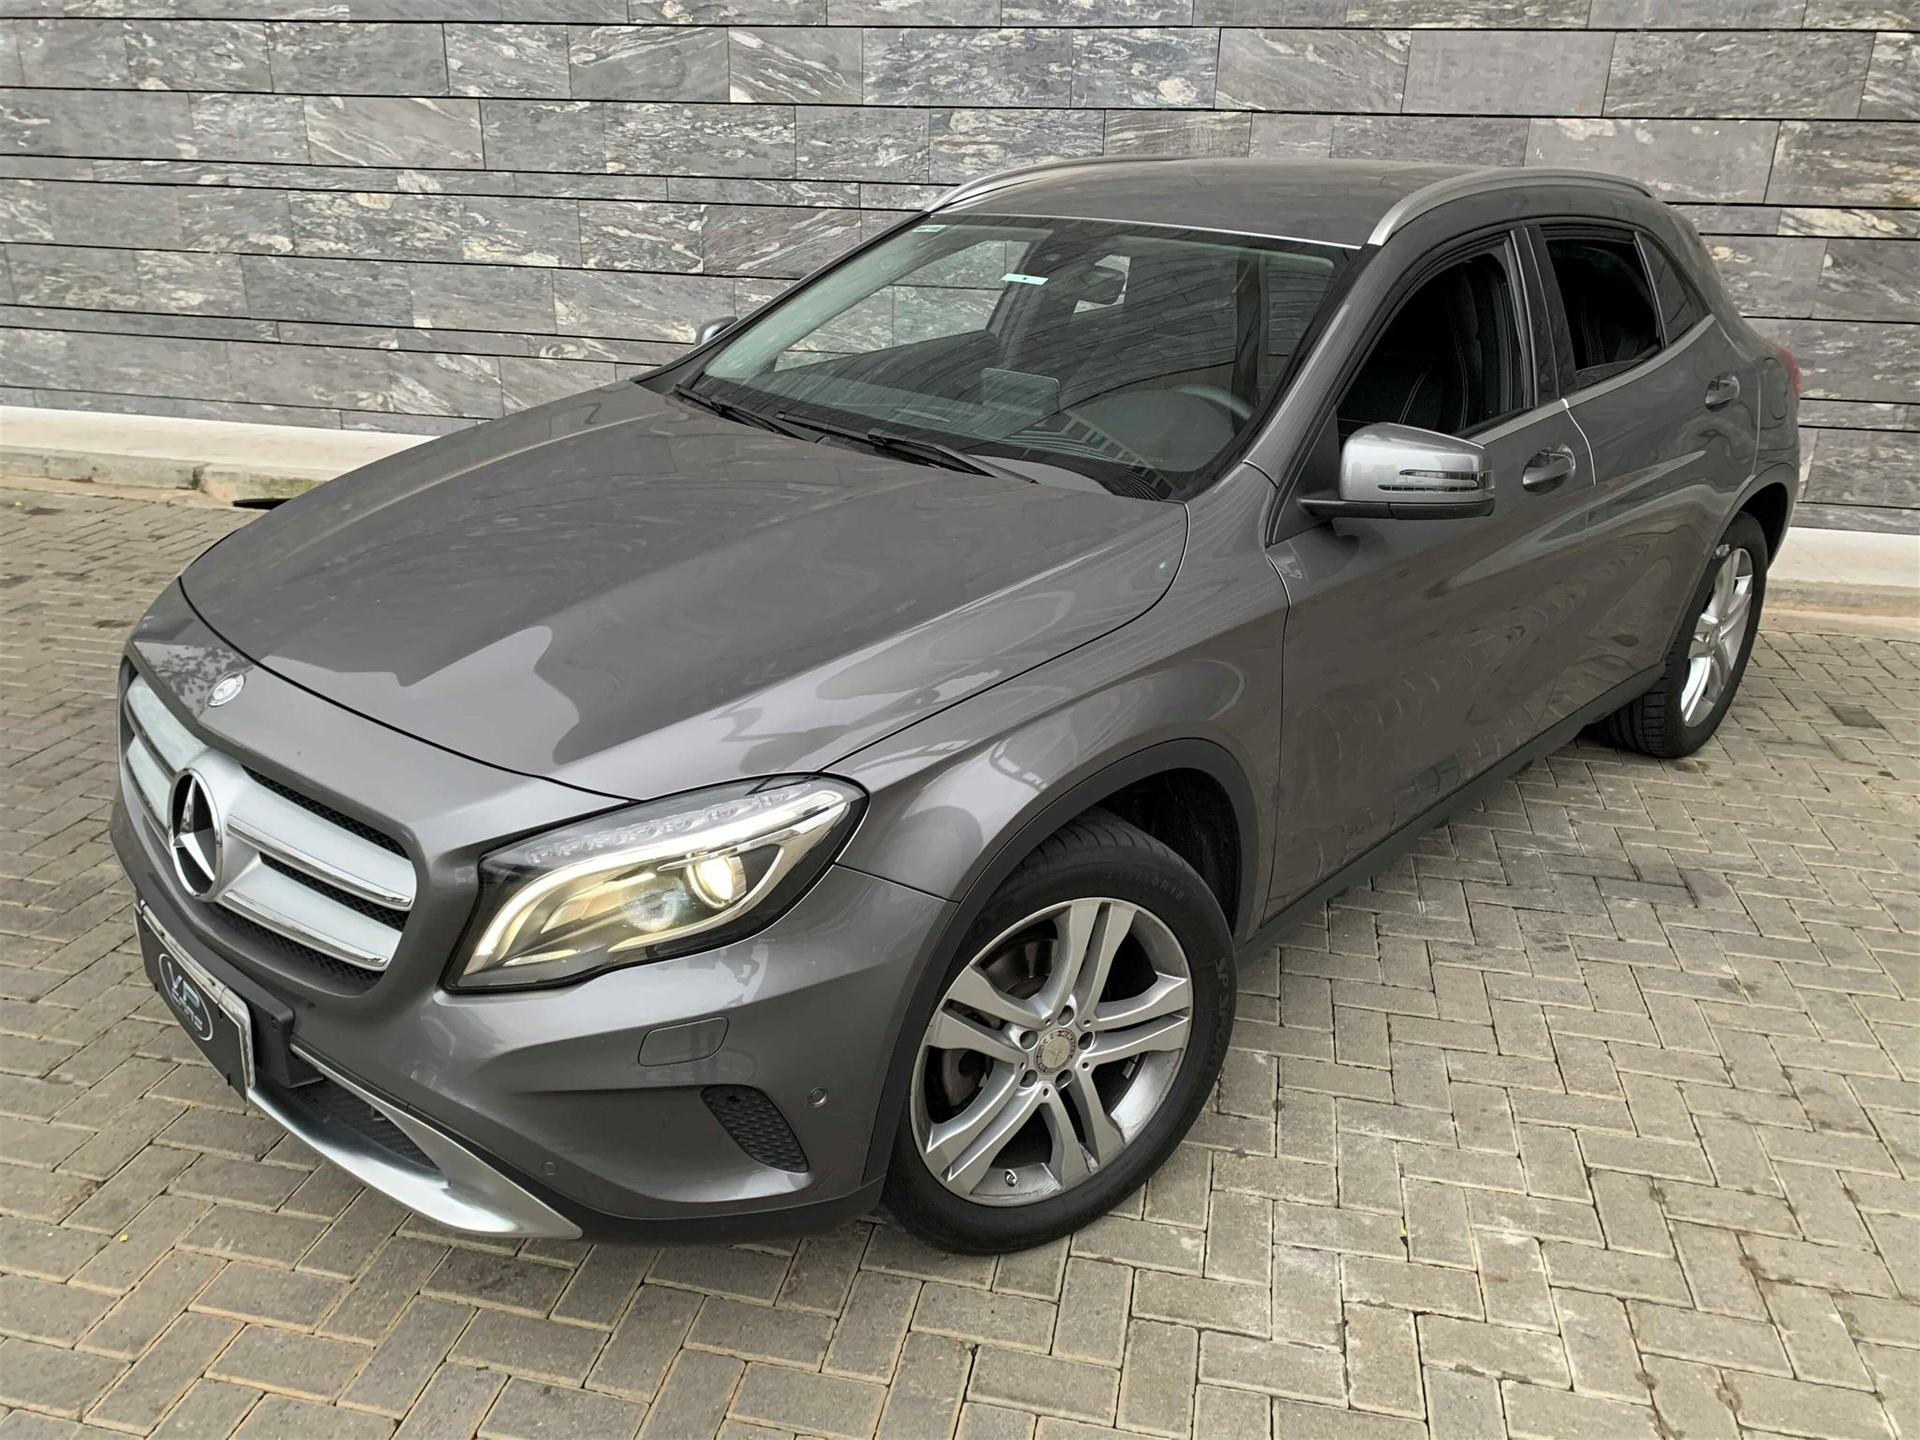 Mercedesbenz Gla 200 1.6 Cgi Advance 16v Turbo Flex 4p Automatico Wmimagem18031706915